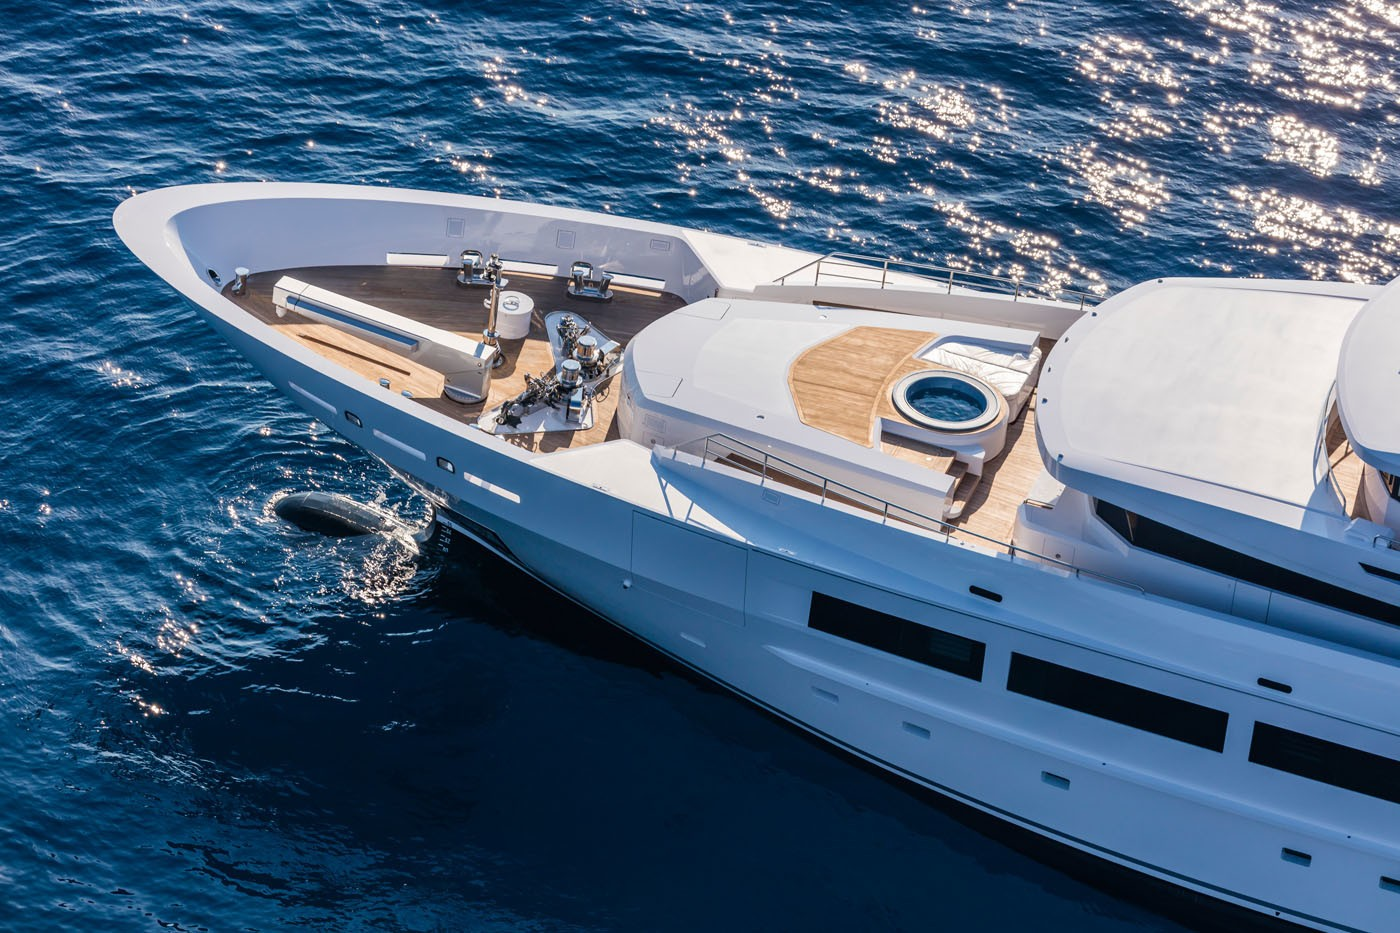 Jacuzzi Pool Upon Deck Fore Aboard Yacht SUERTE